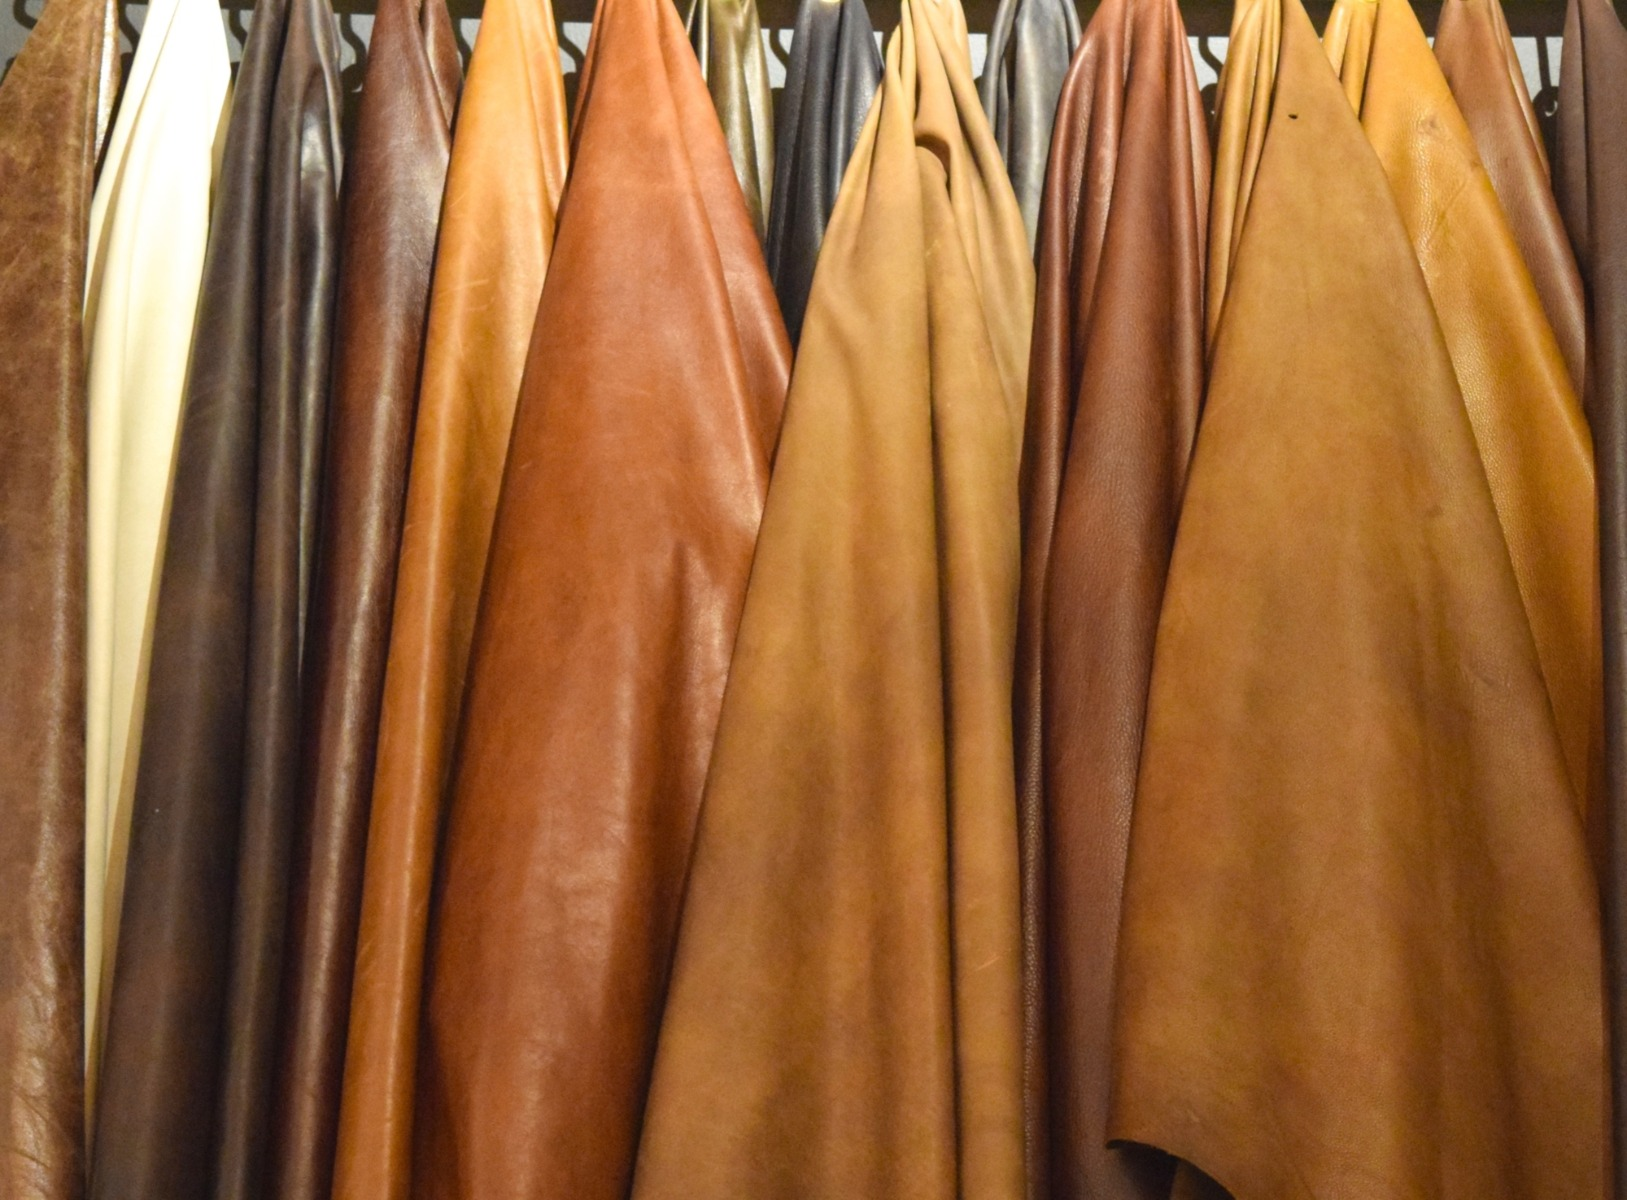 Hanging leather hides